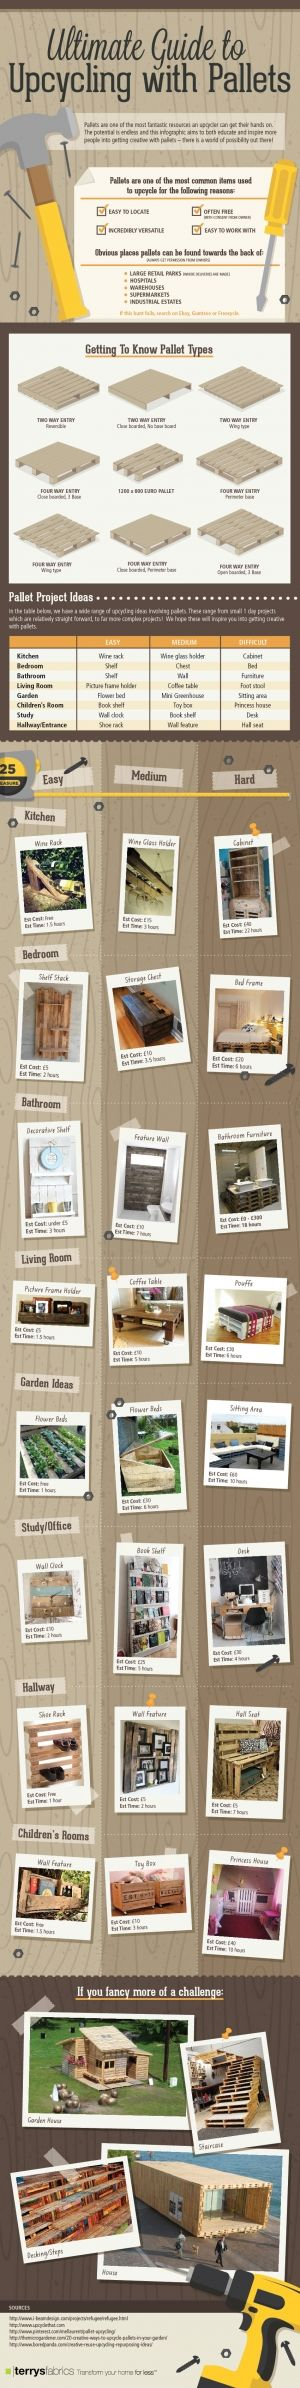 Ultimate Guide To Upcycling Pallets • 1001 Pallets